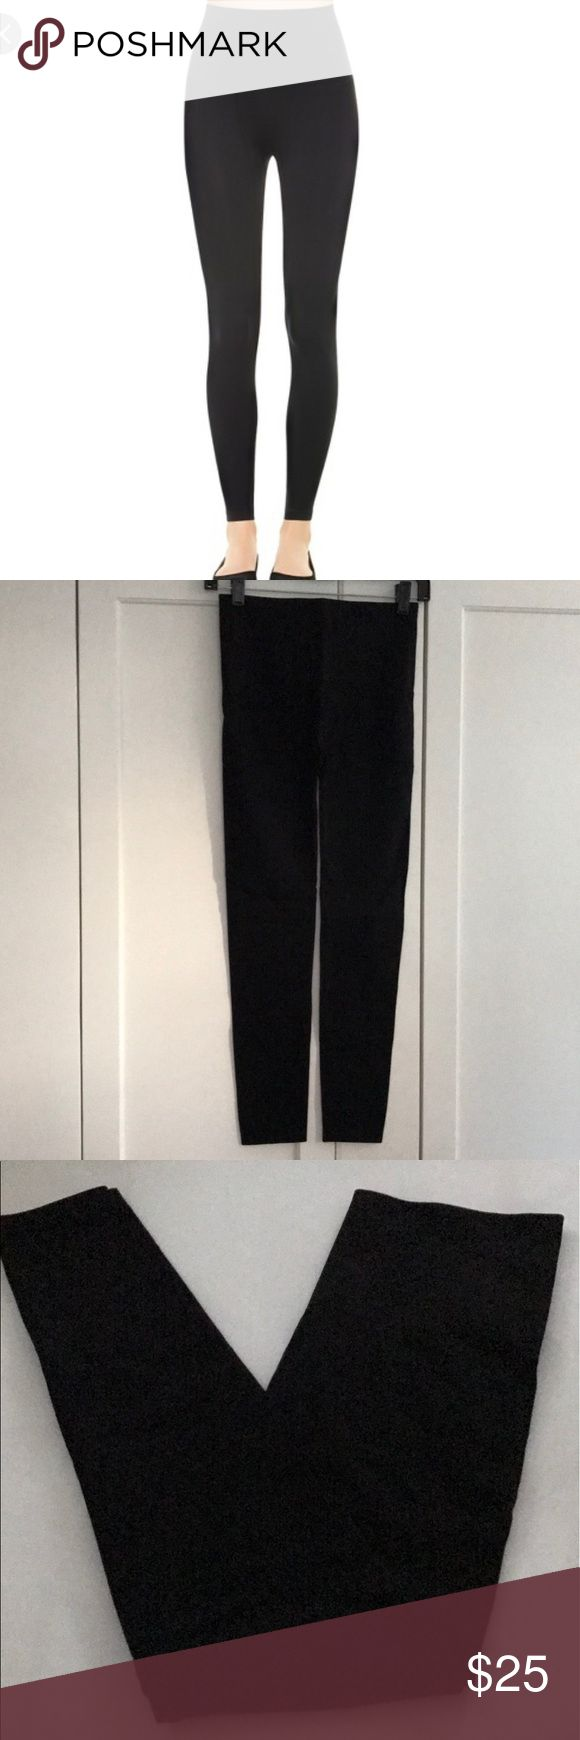 """Spanx assets leggings Spanx red hot assets leggings.....worn once.....like new condition.....inseam 26"""" SPANX Pants Leggings"""